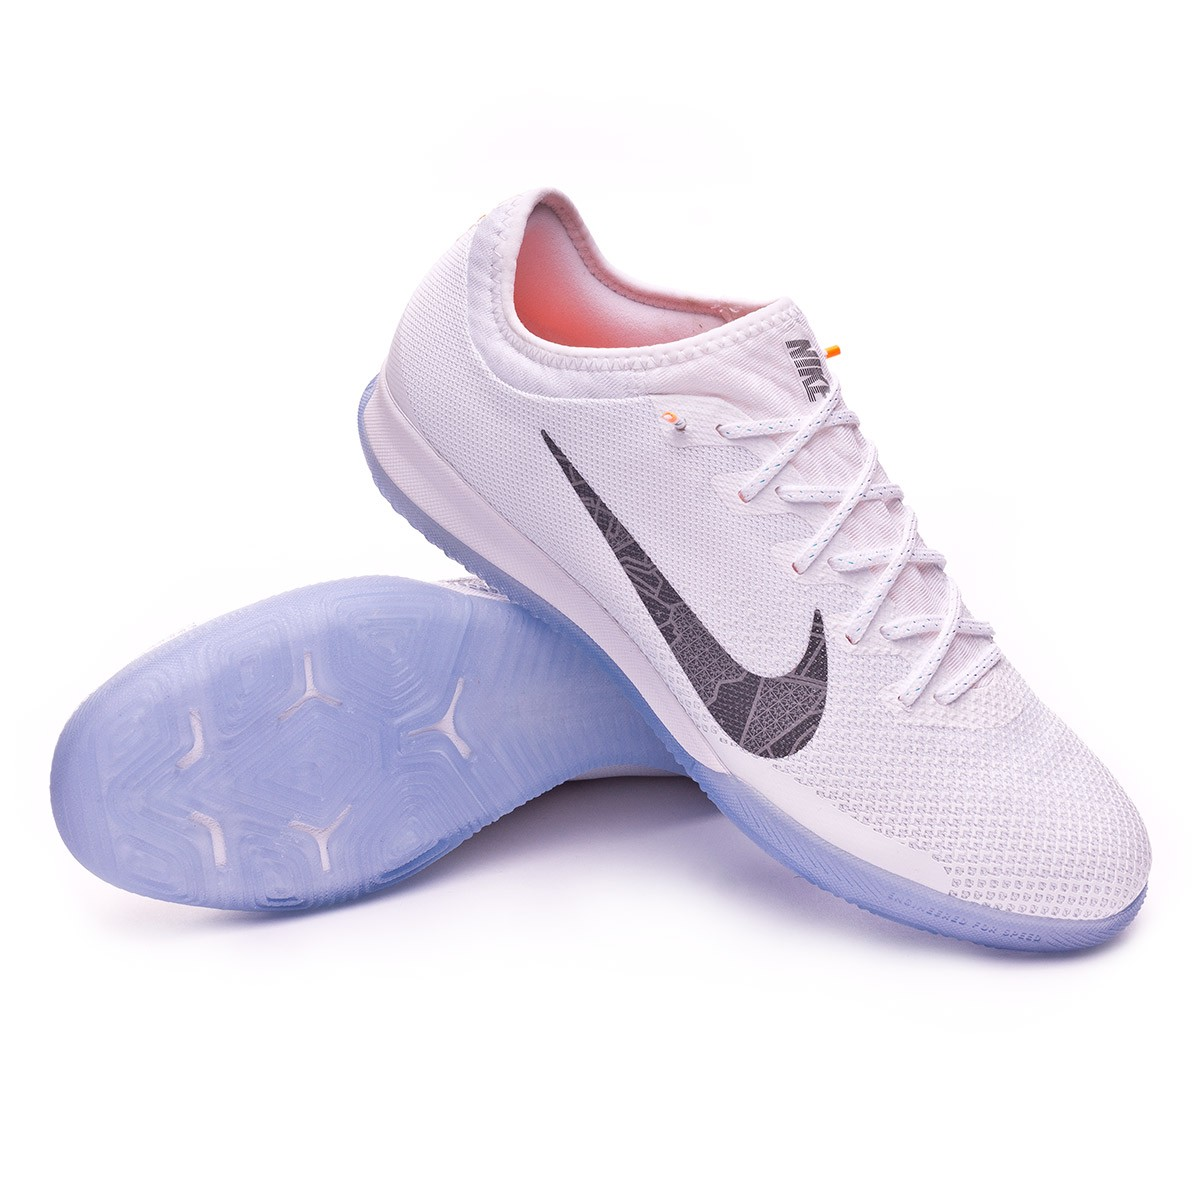 77c28dfc7 Futsal Boot Nike Mercurial VaporX XII Pro IC White-Metallic cool ...